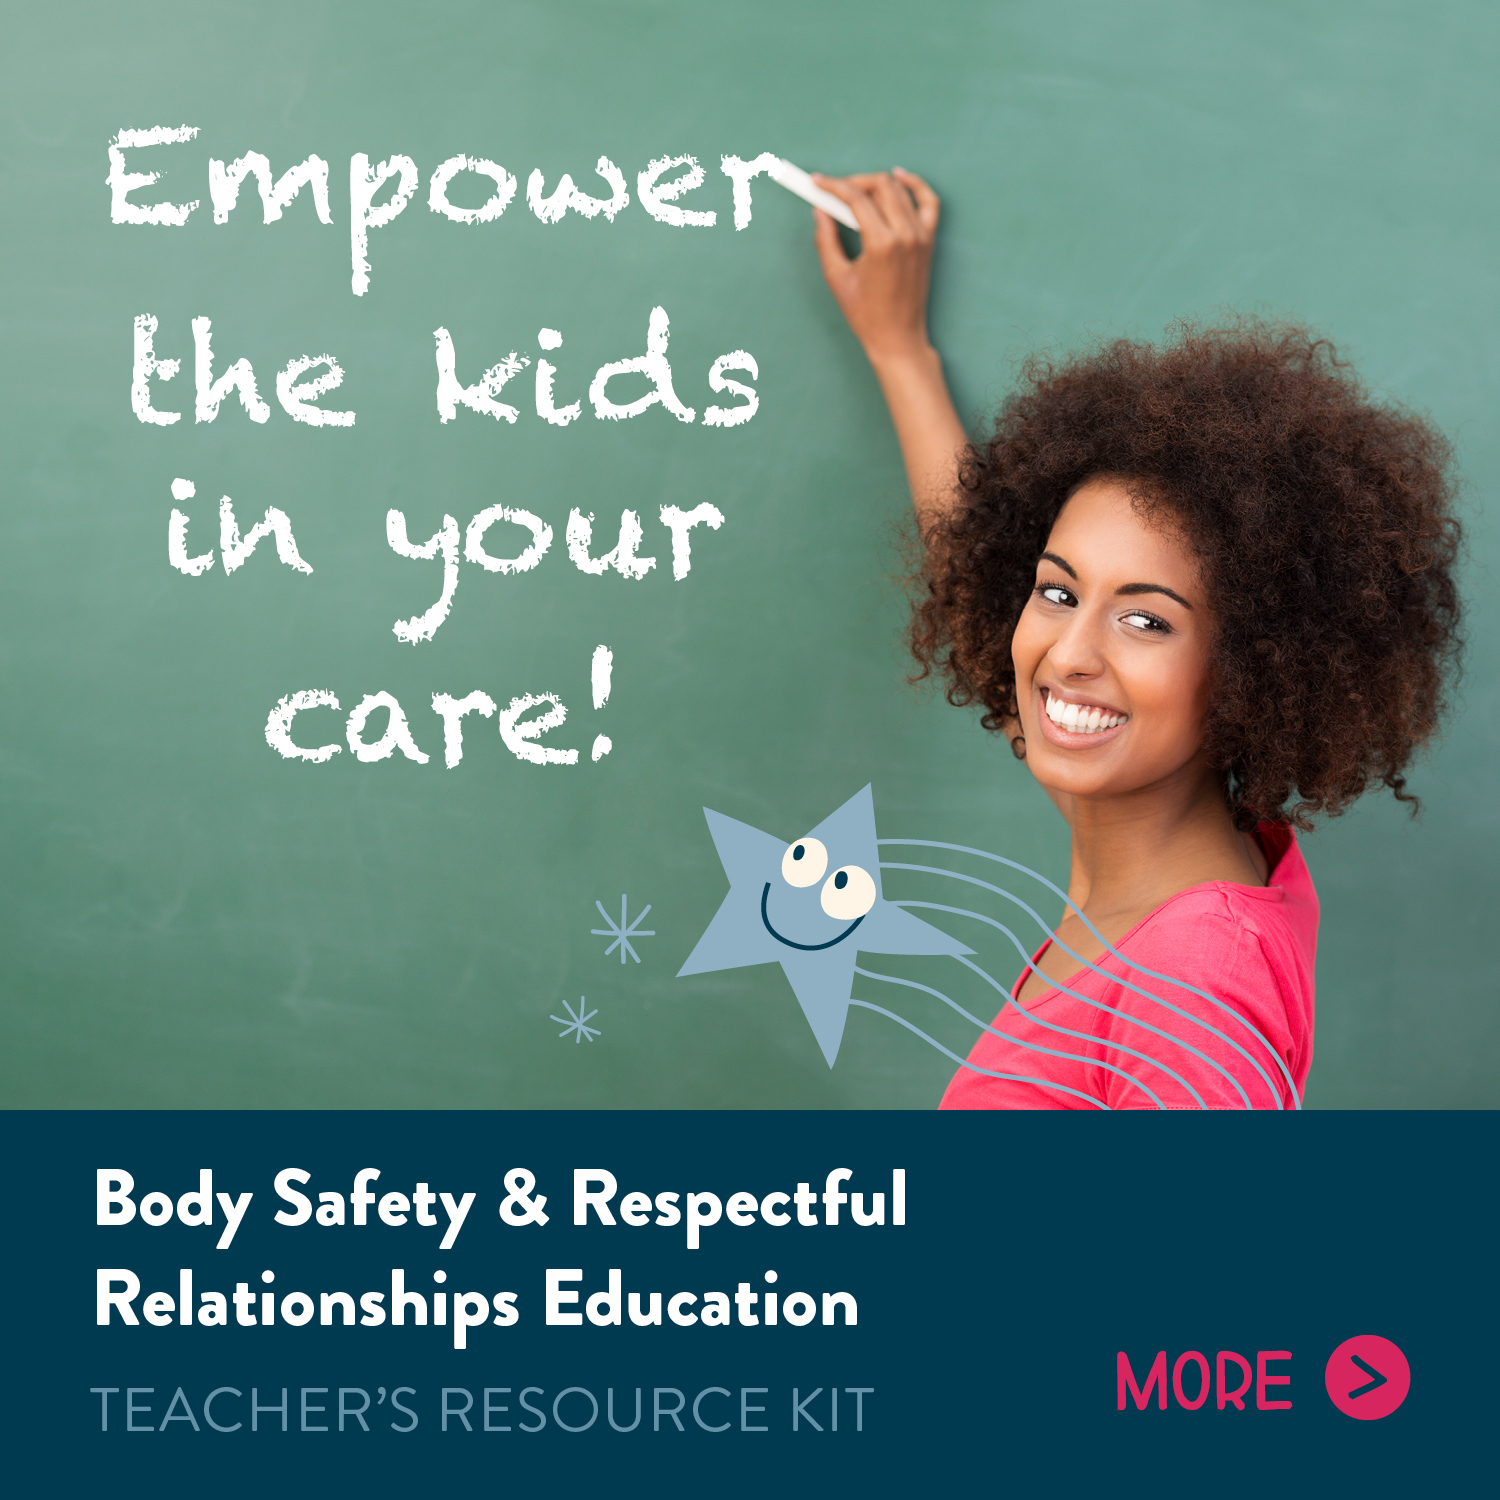 Empower the kids in your care!